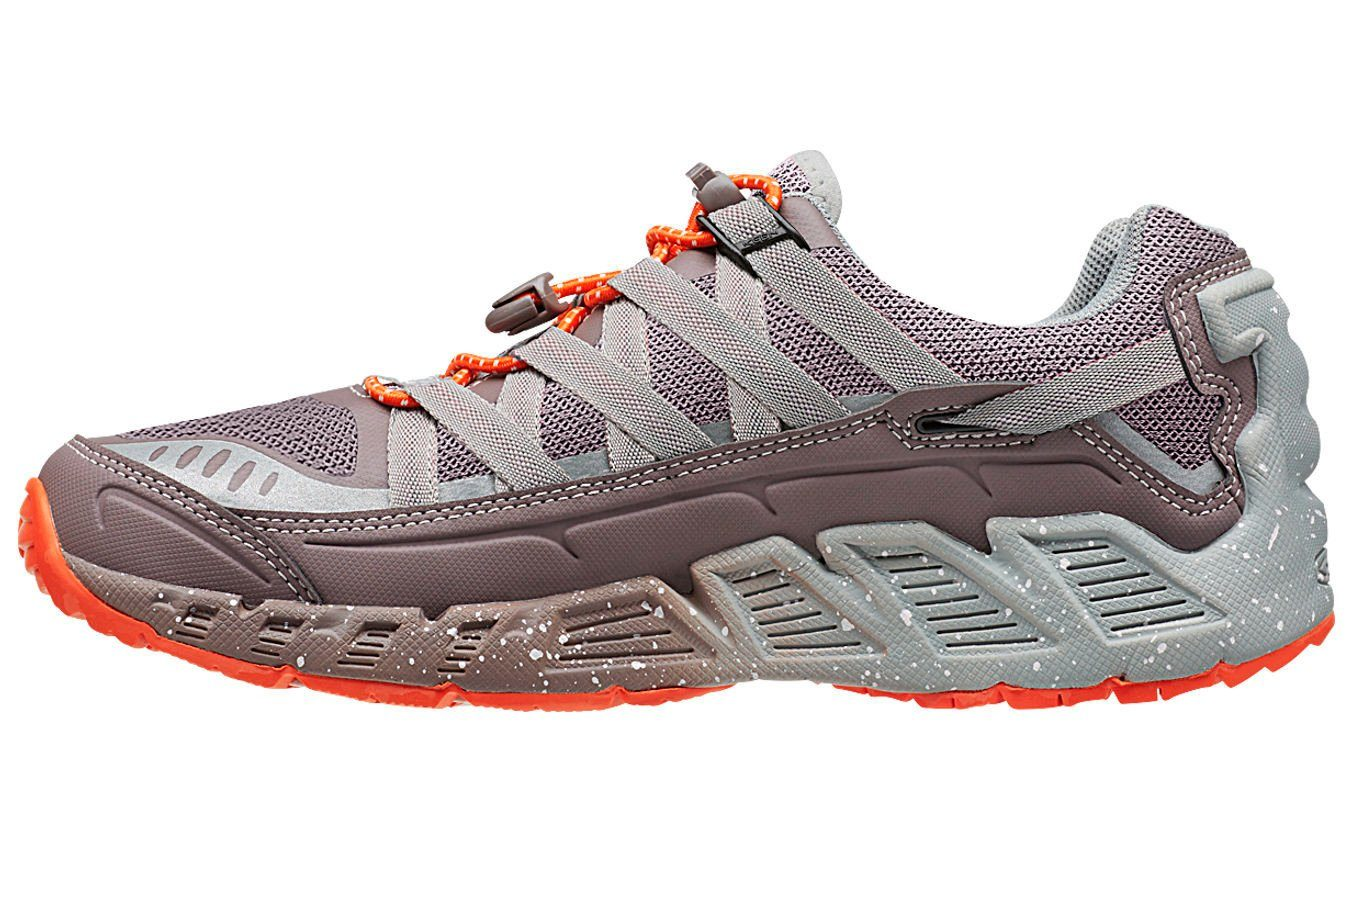 Keen Kletterschuh Versatrail WP Shoes Women  grau